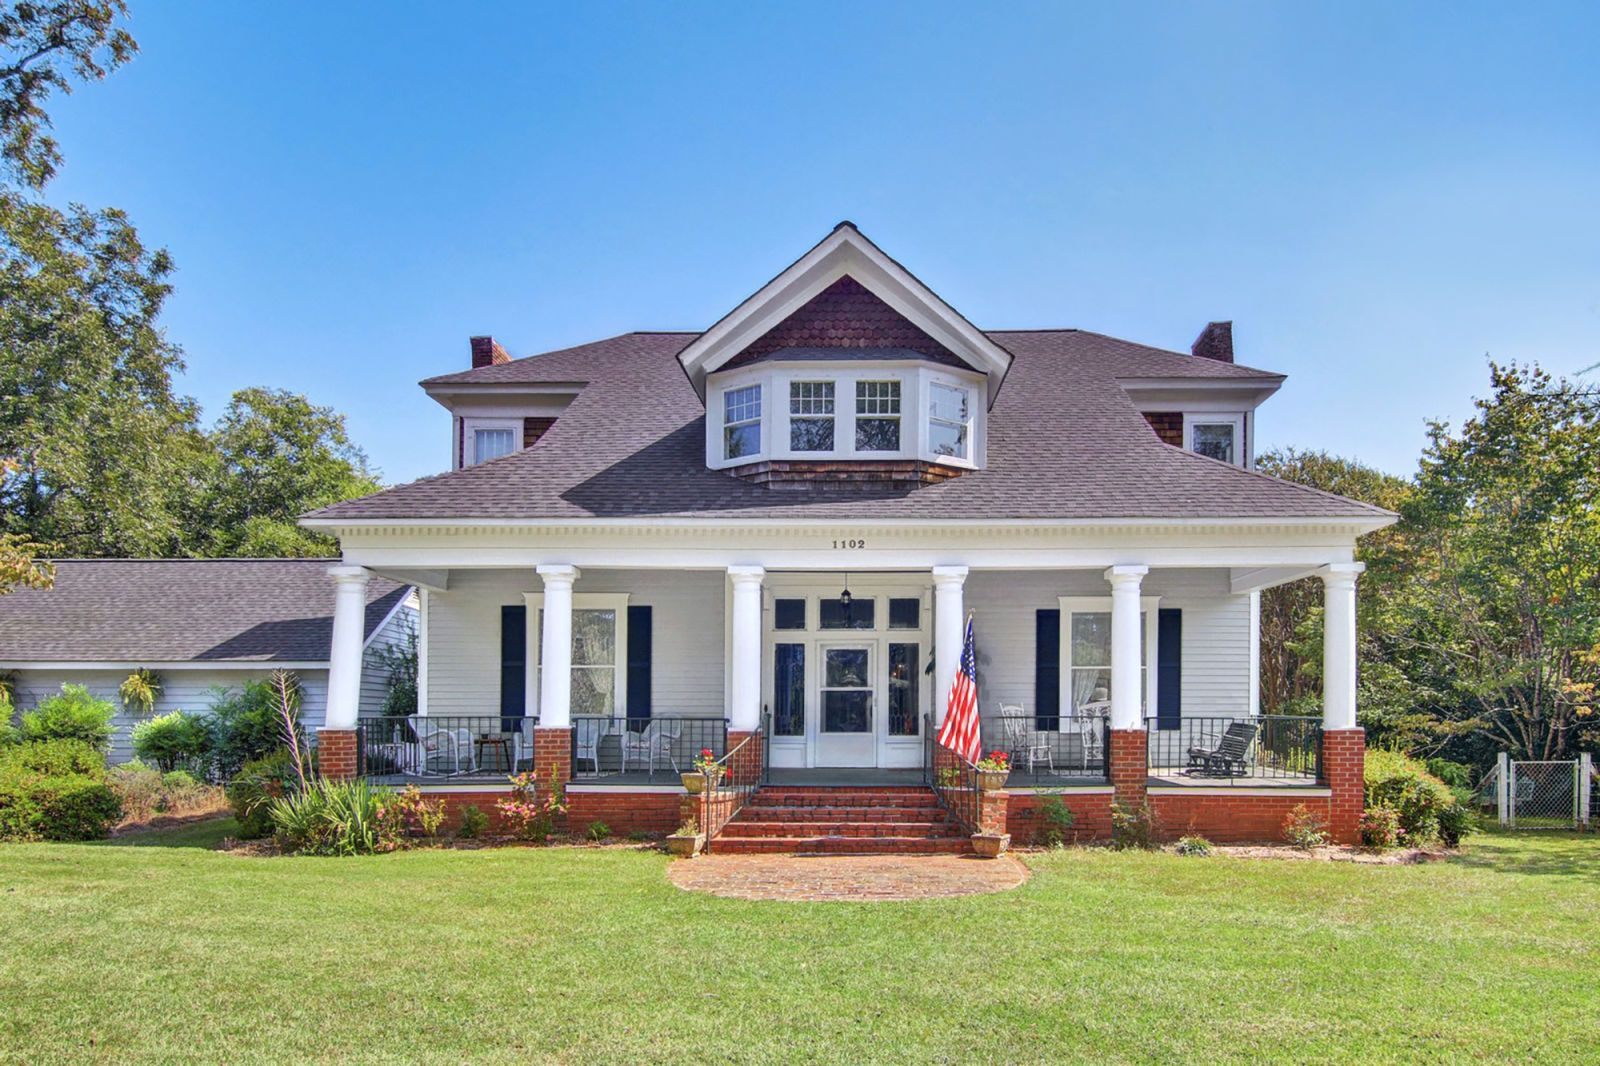 craftsman houses for sale craftsman house real estate listings and rh countryliving com craftsman style cabins craftsman style houses american